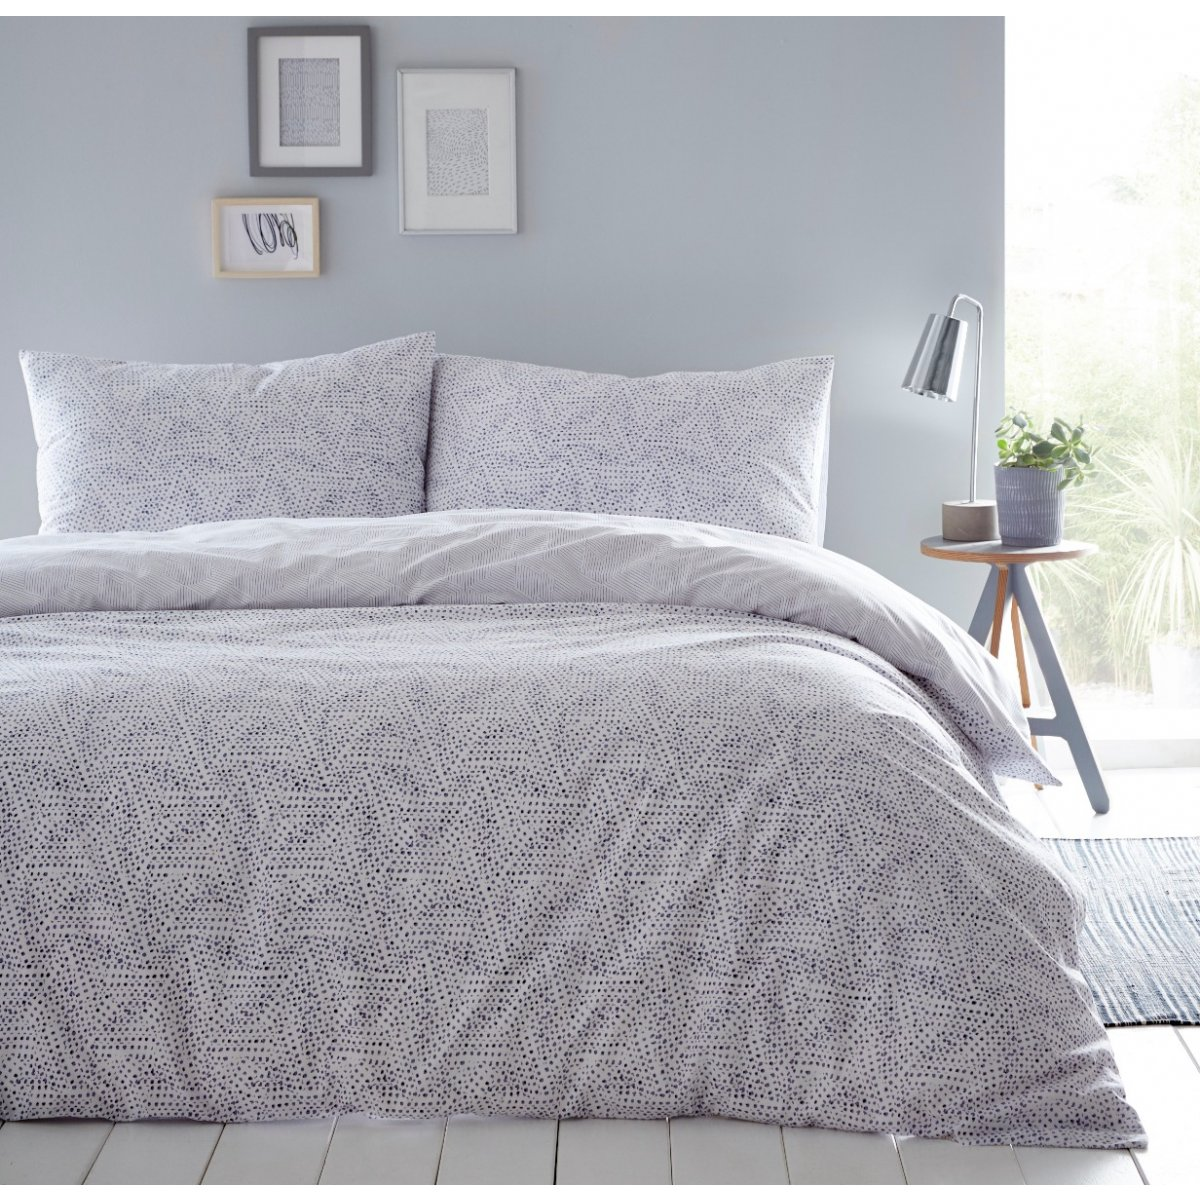 Melody Grey Bedding - Reversible Duvet Cover and Pillowcase Set